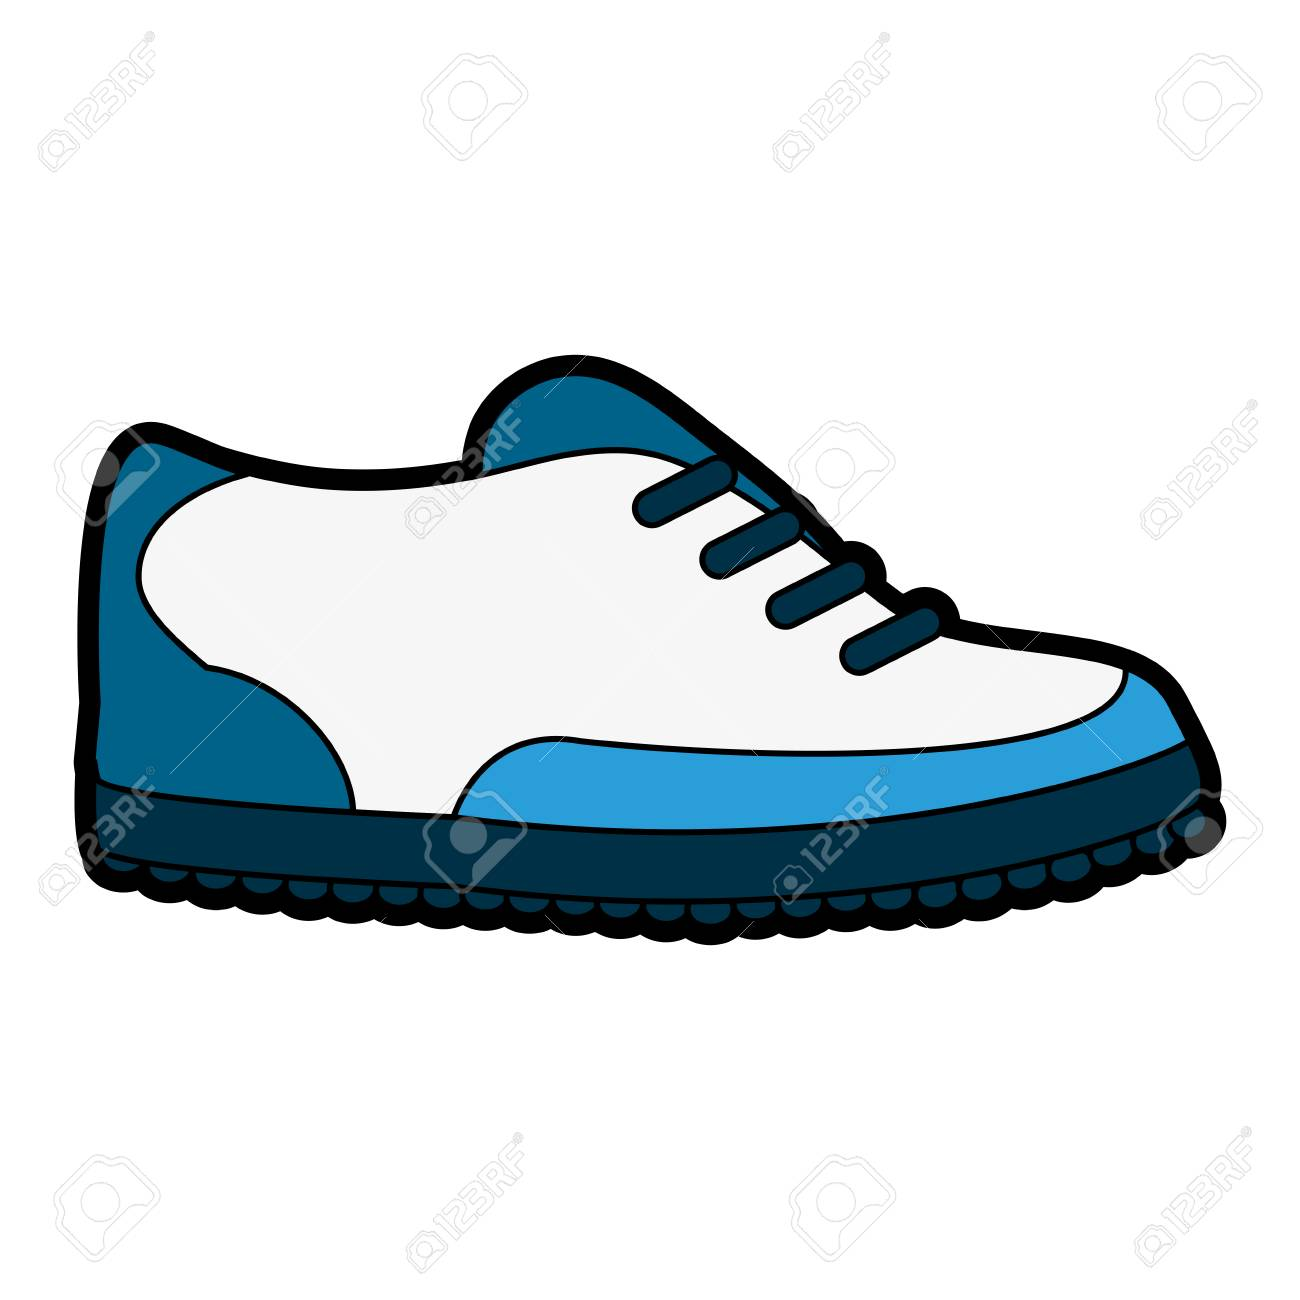 shoes golf related icon image vector illustration design royalty rh 123rf com vector shoe print vector sports